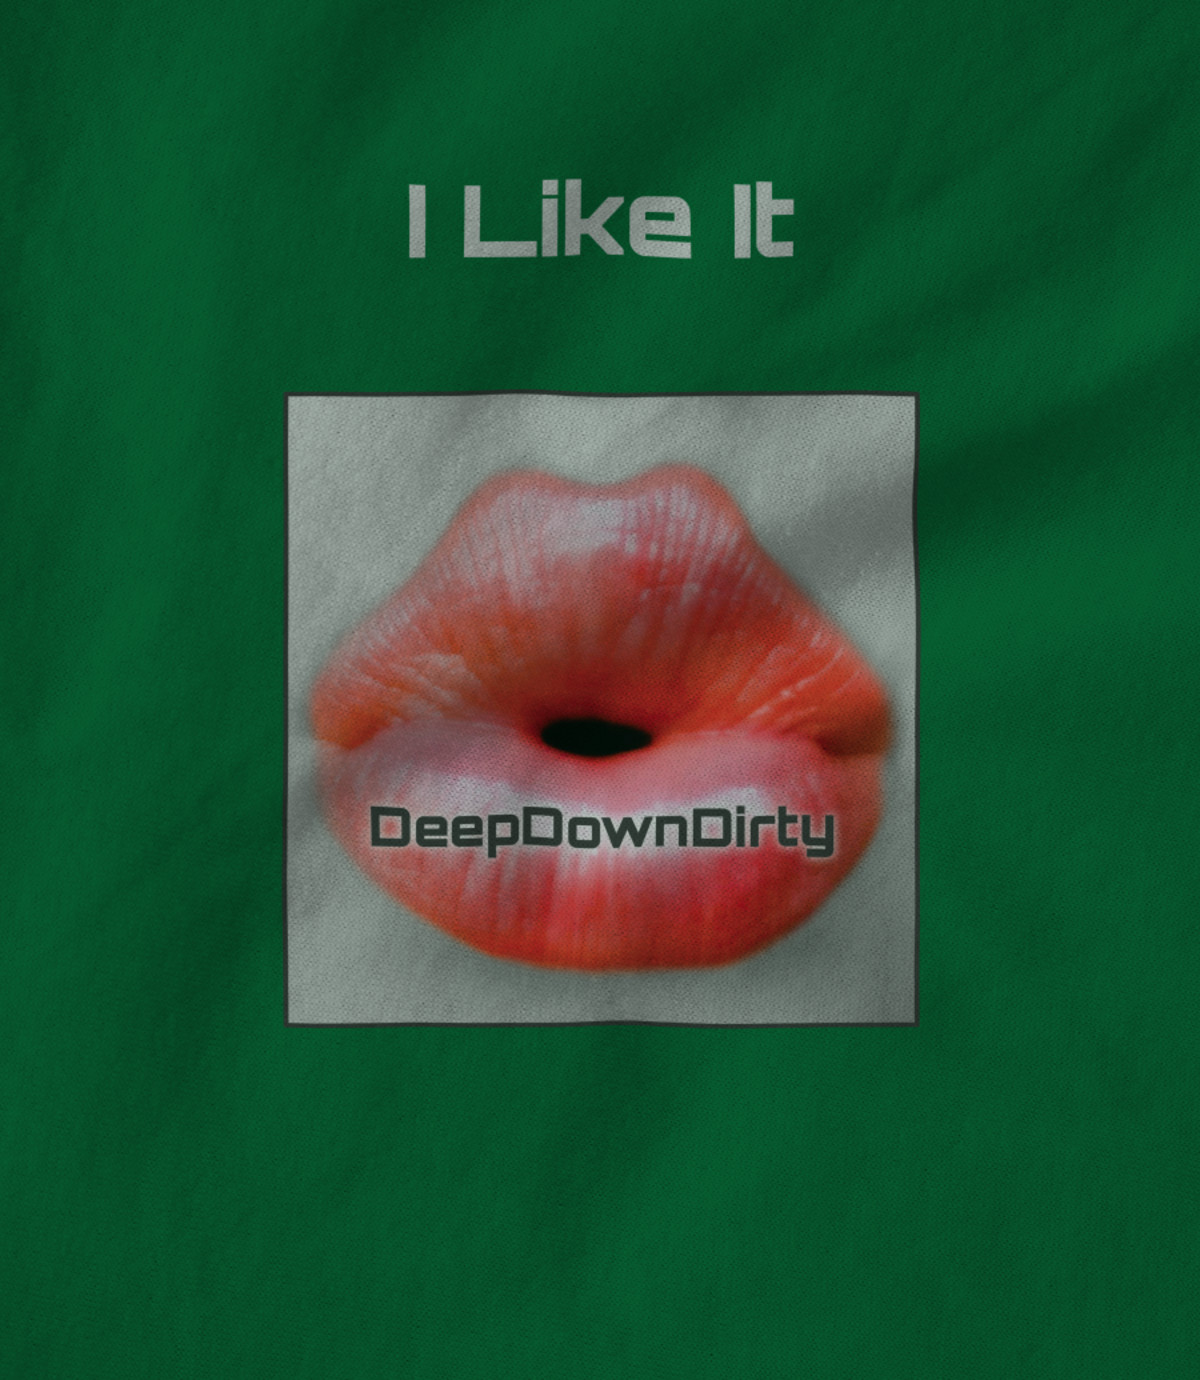 Deepdowndirty record label i like it square black 1523433309